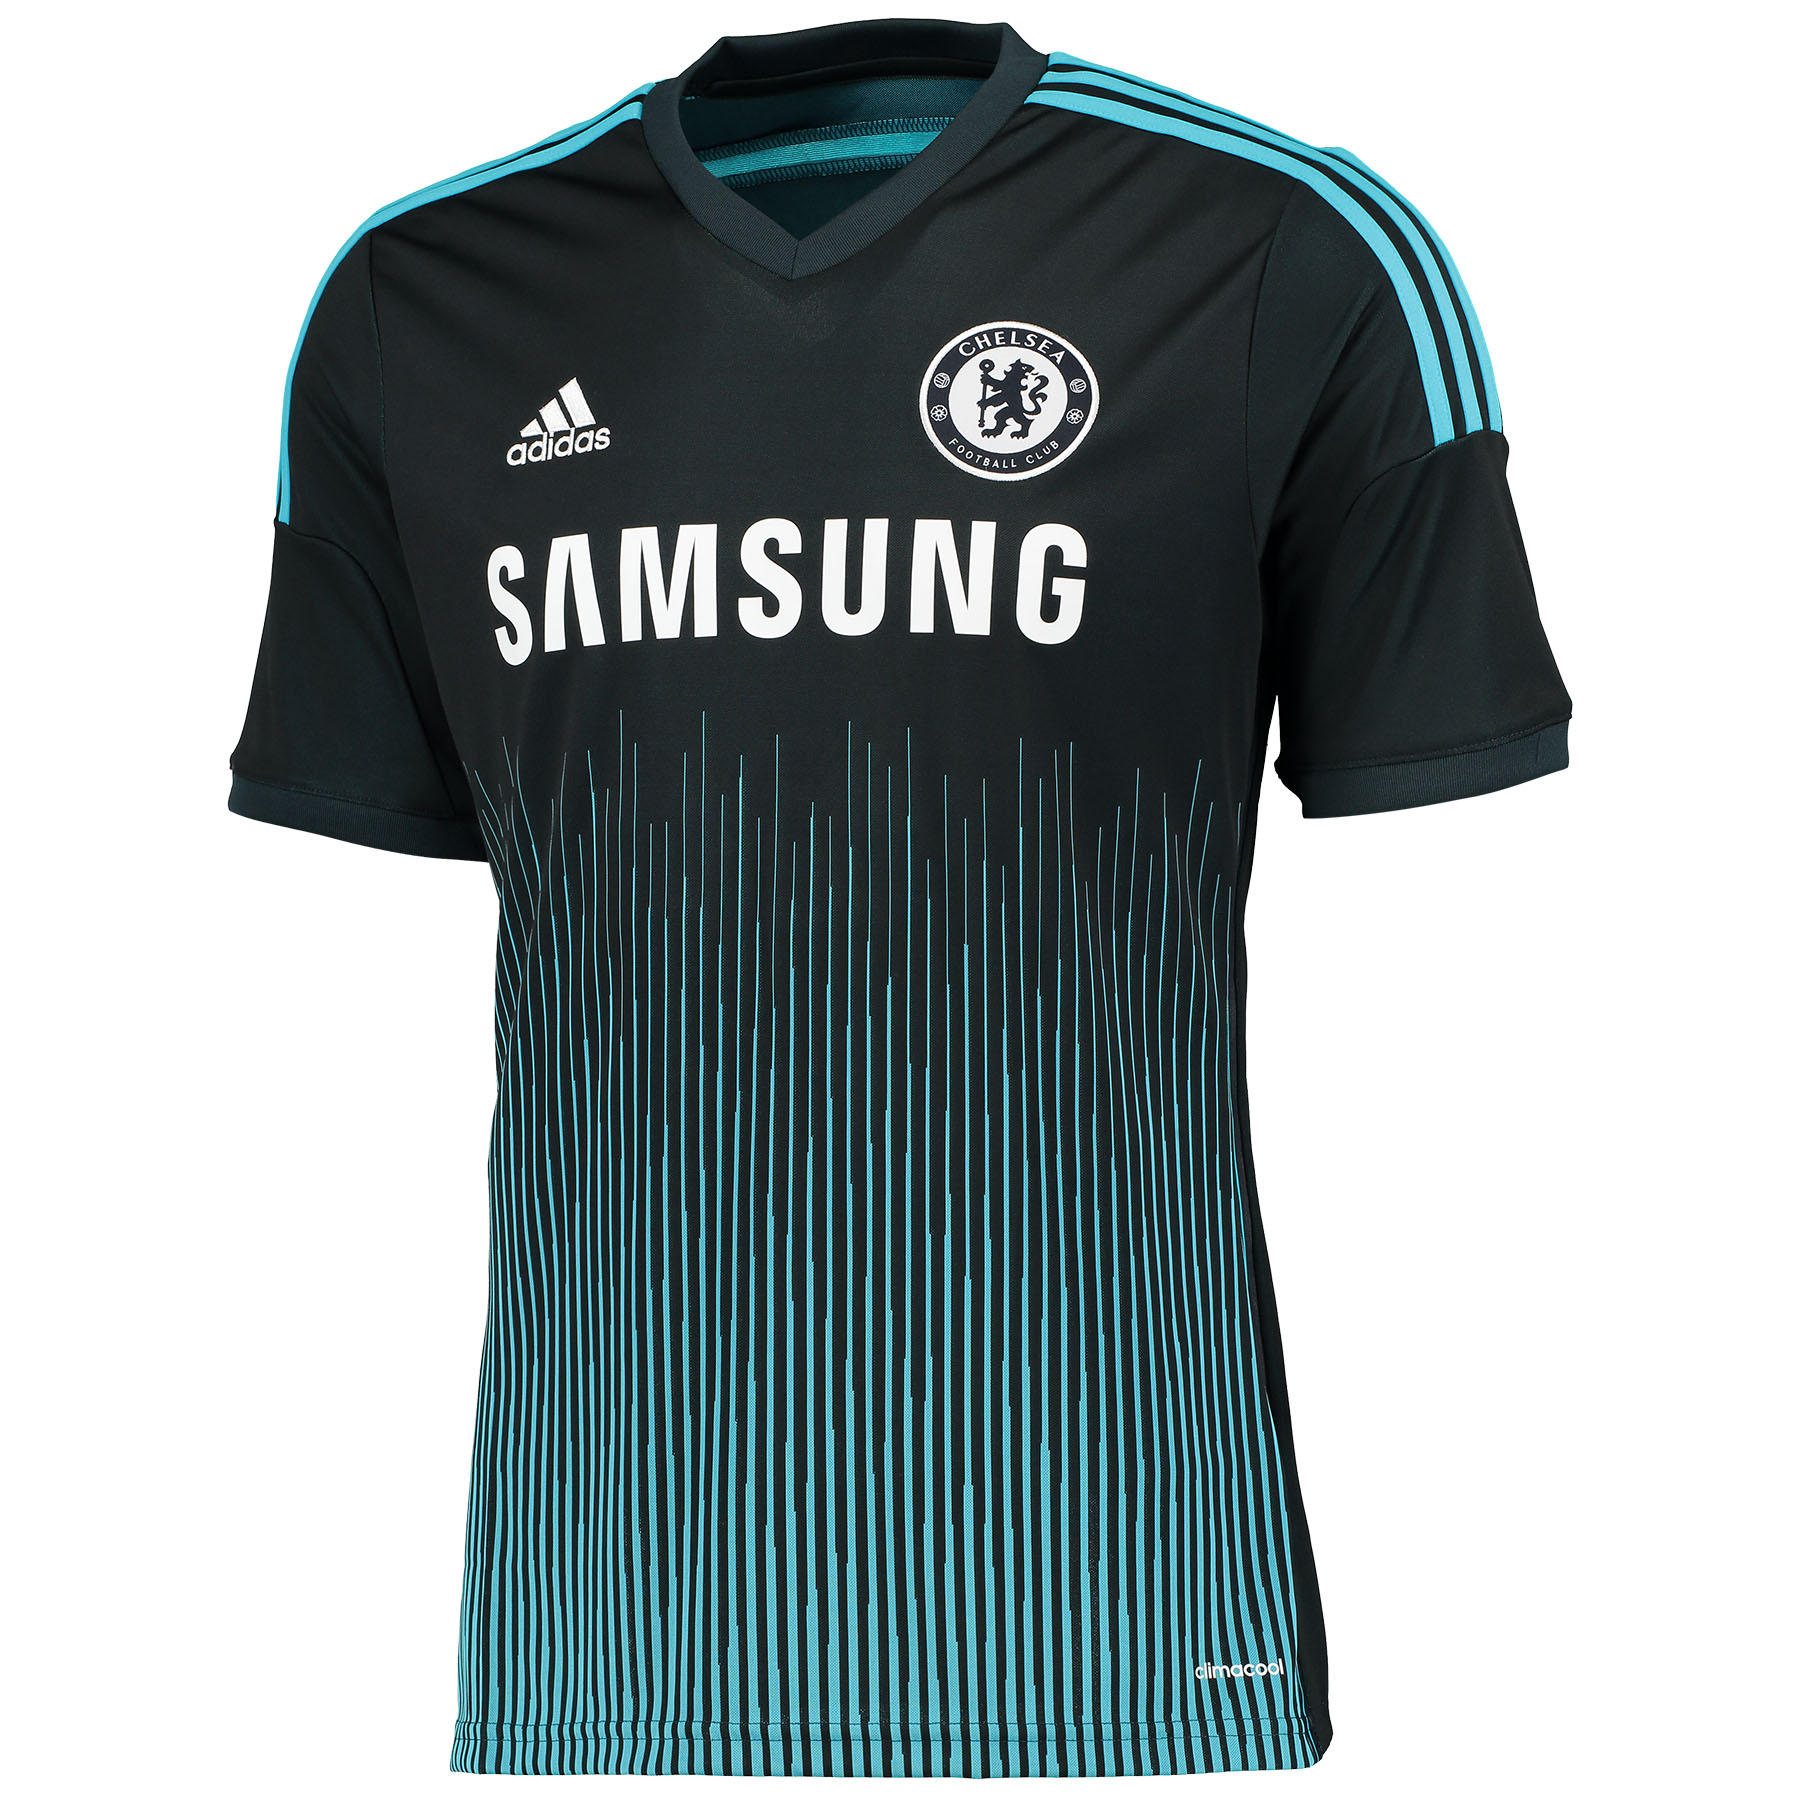 Chelsea Third Shirt 2014/15 Train at your best in this dark blue 2014/15 adidas men's Chelsea Third Shirt which includes the latest adidas technologies such as the moistu